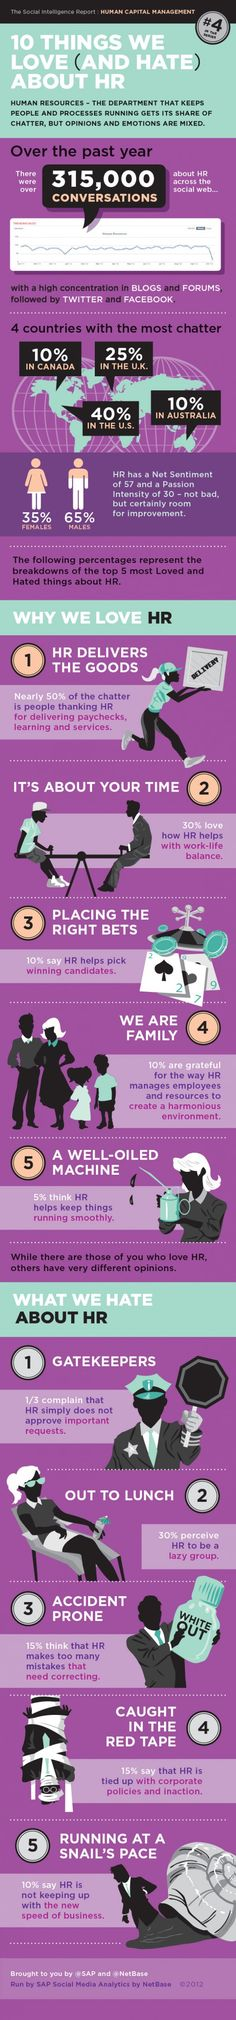 The 10 Things You Love (And Hate) About HR